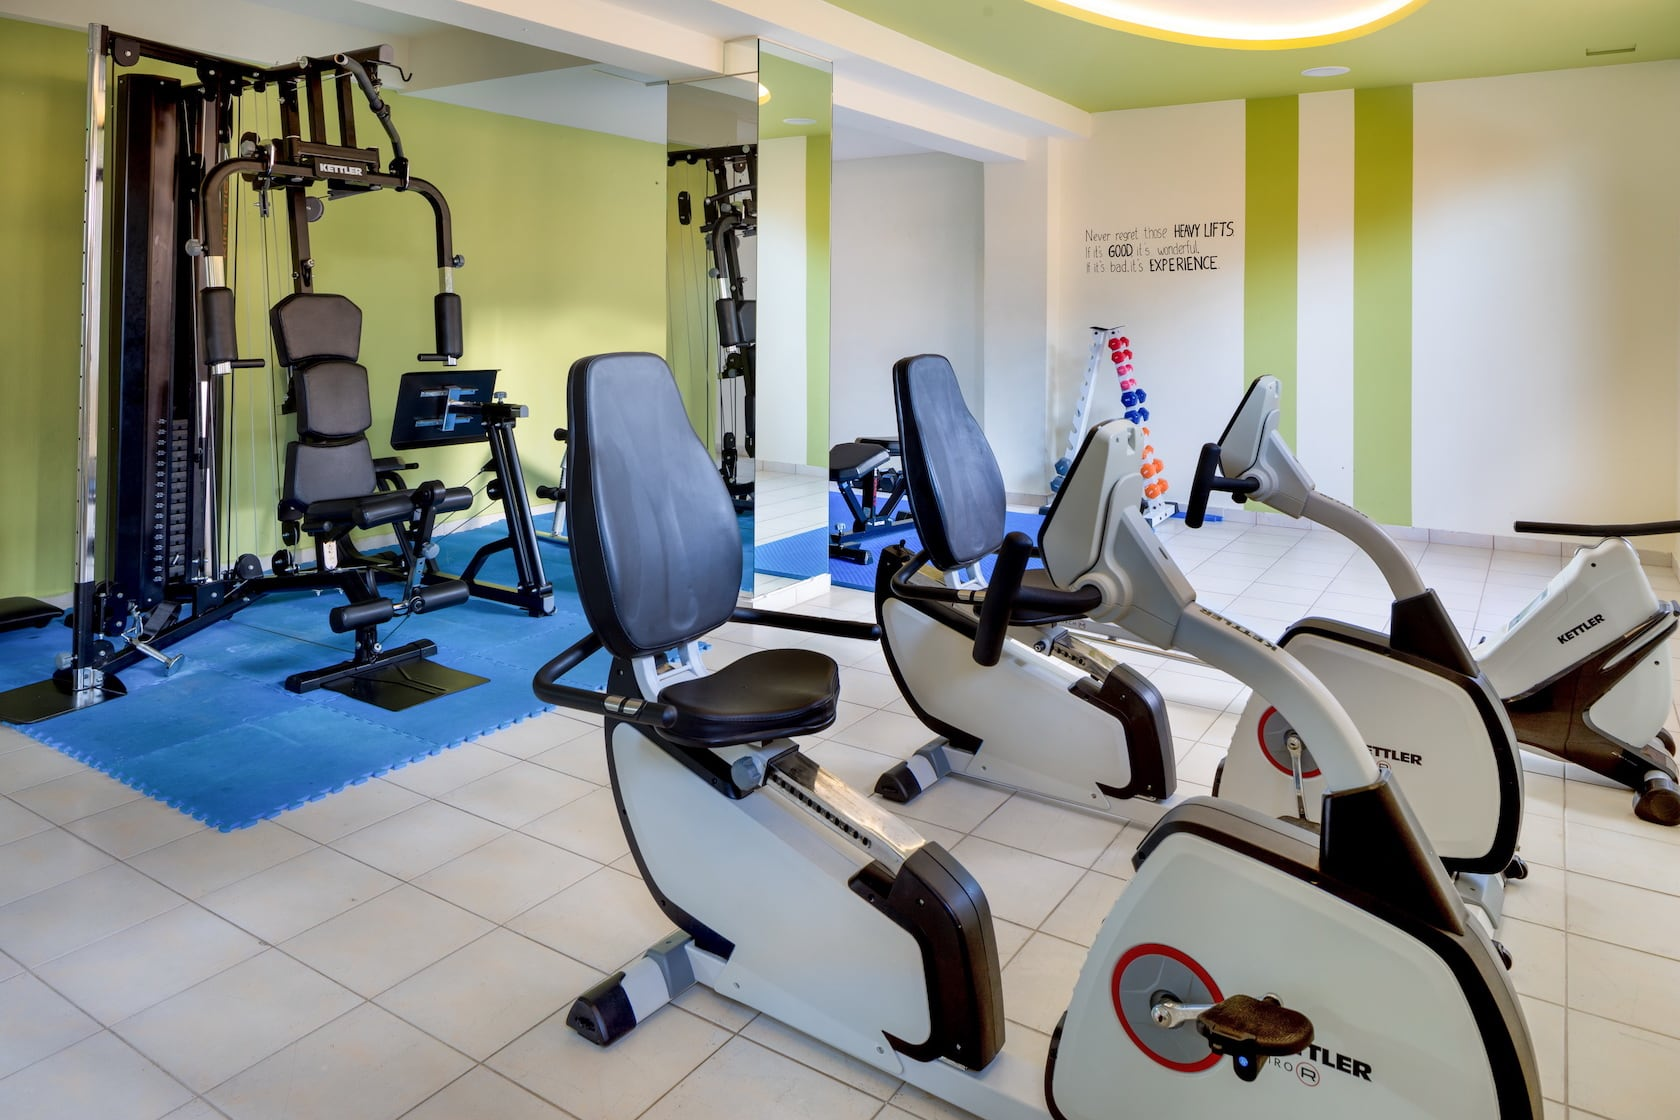 Fitness bikes in the Gym of Oscar Suites & Village Hotel in Chania.